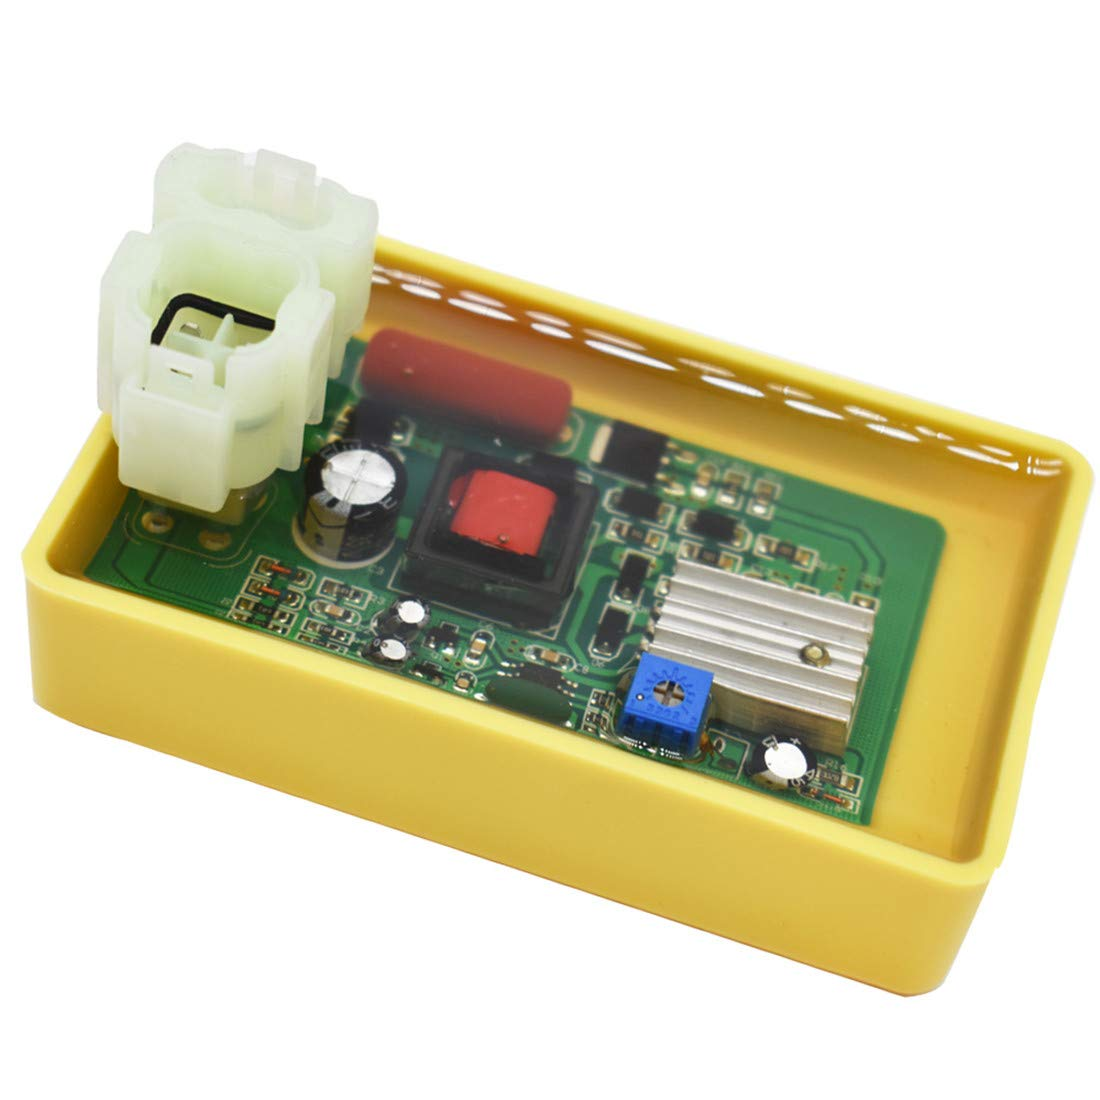 WFLNHB 6 Pin DC CDI Box Fit for GY6 Performance 50cc 125cc 150cc 250cc Moped Scooter ATV Go Karts